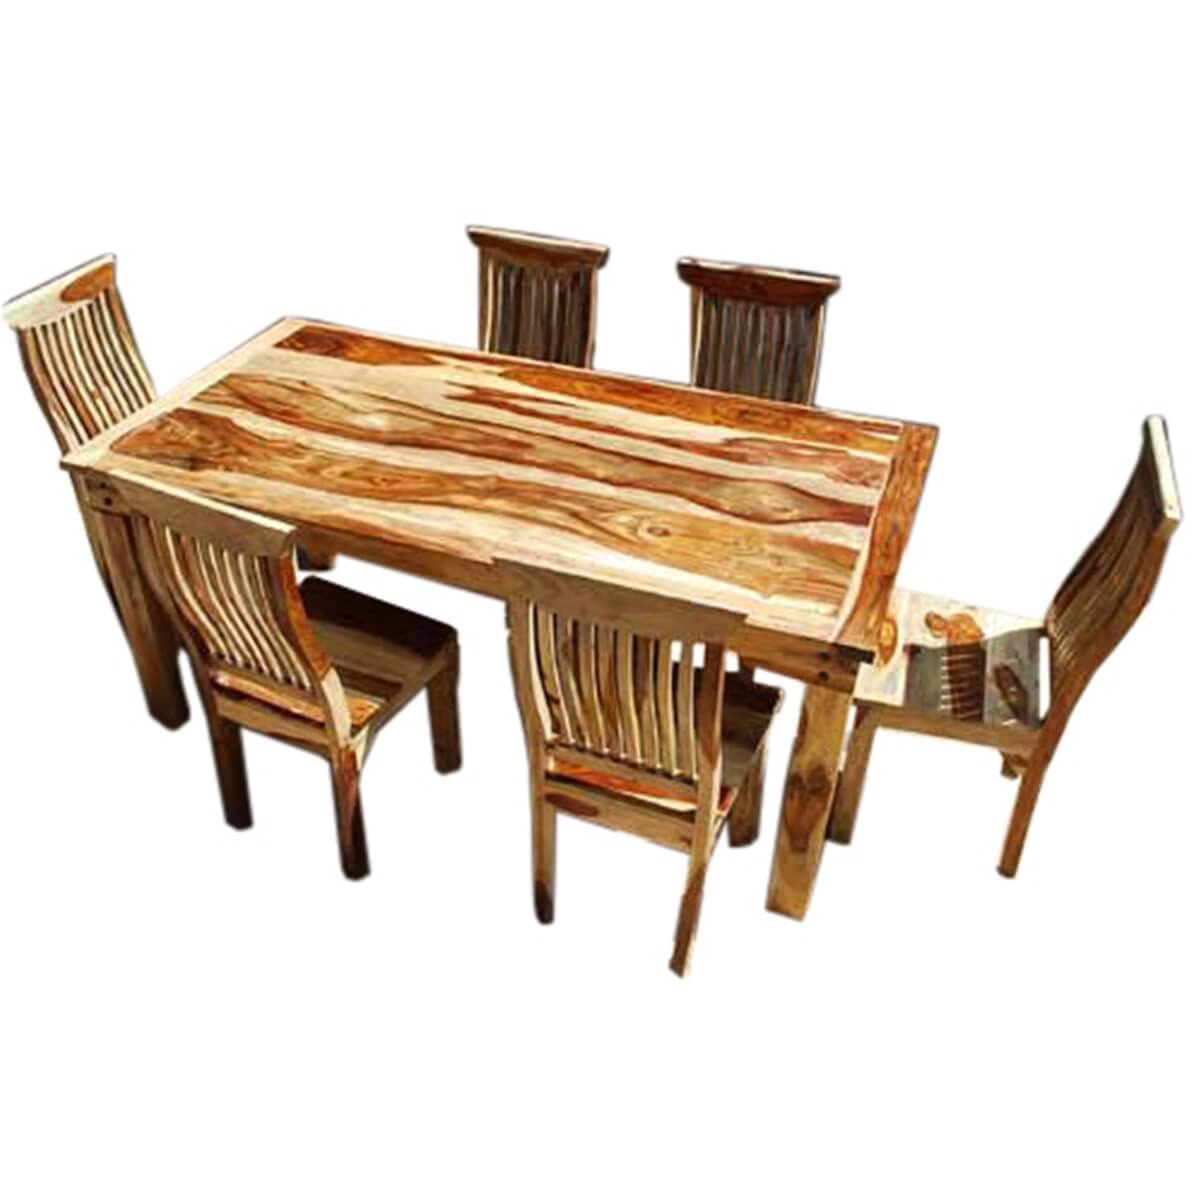 Dining Room Sets Wood: 7 Piece Formal Dining Room Kitchen Table Chair Set Rustic